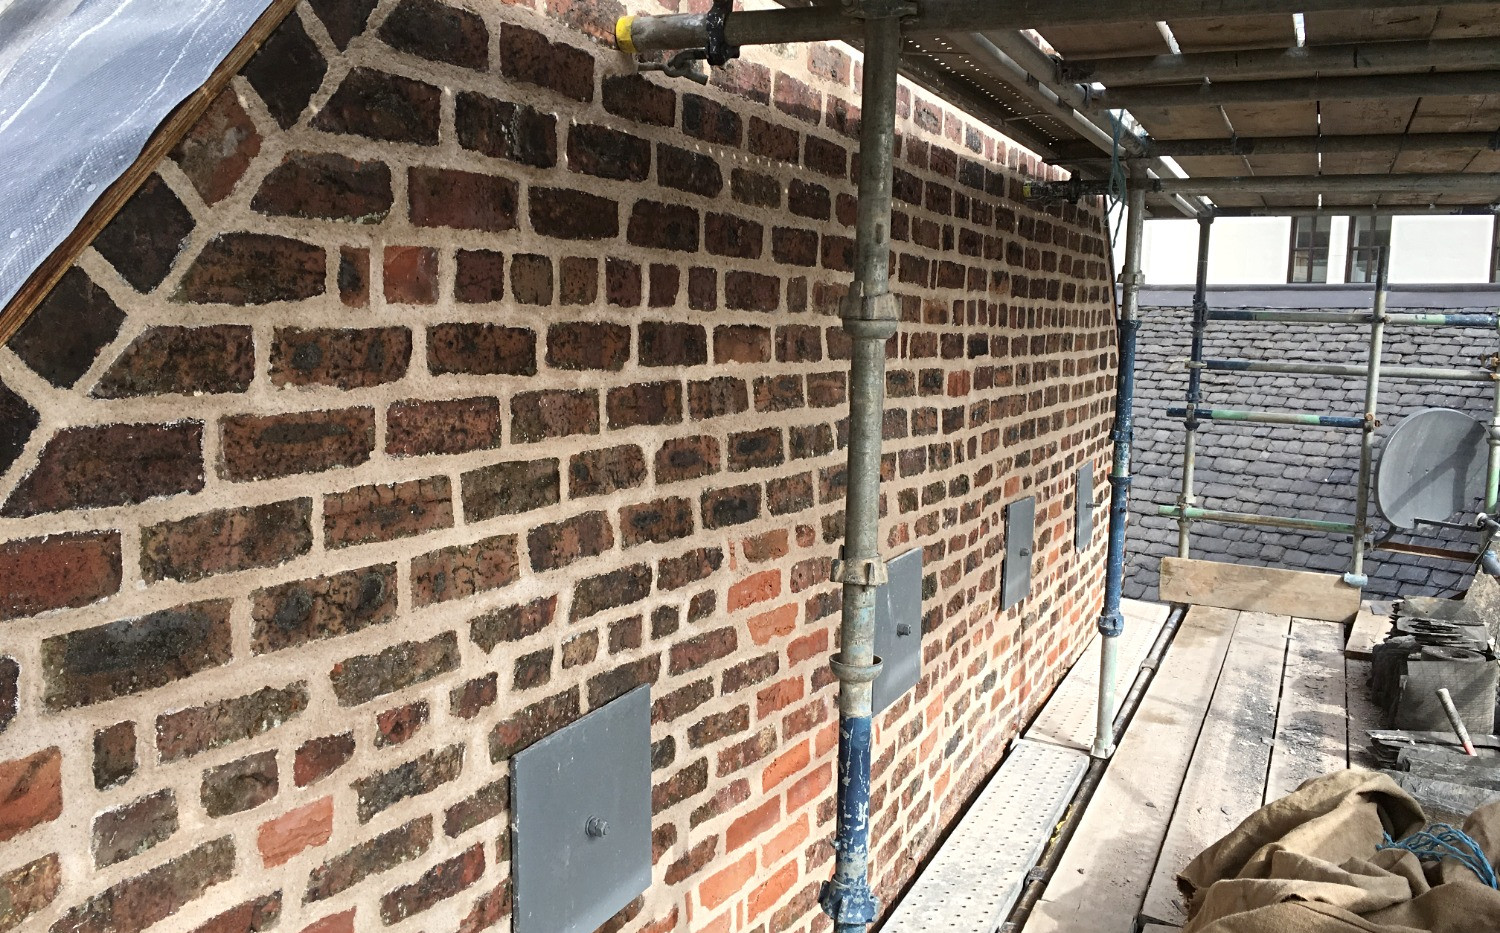 lime-pointing-brickwork-falkirk-1.jpg